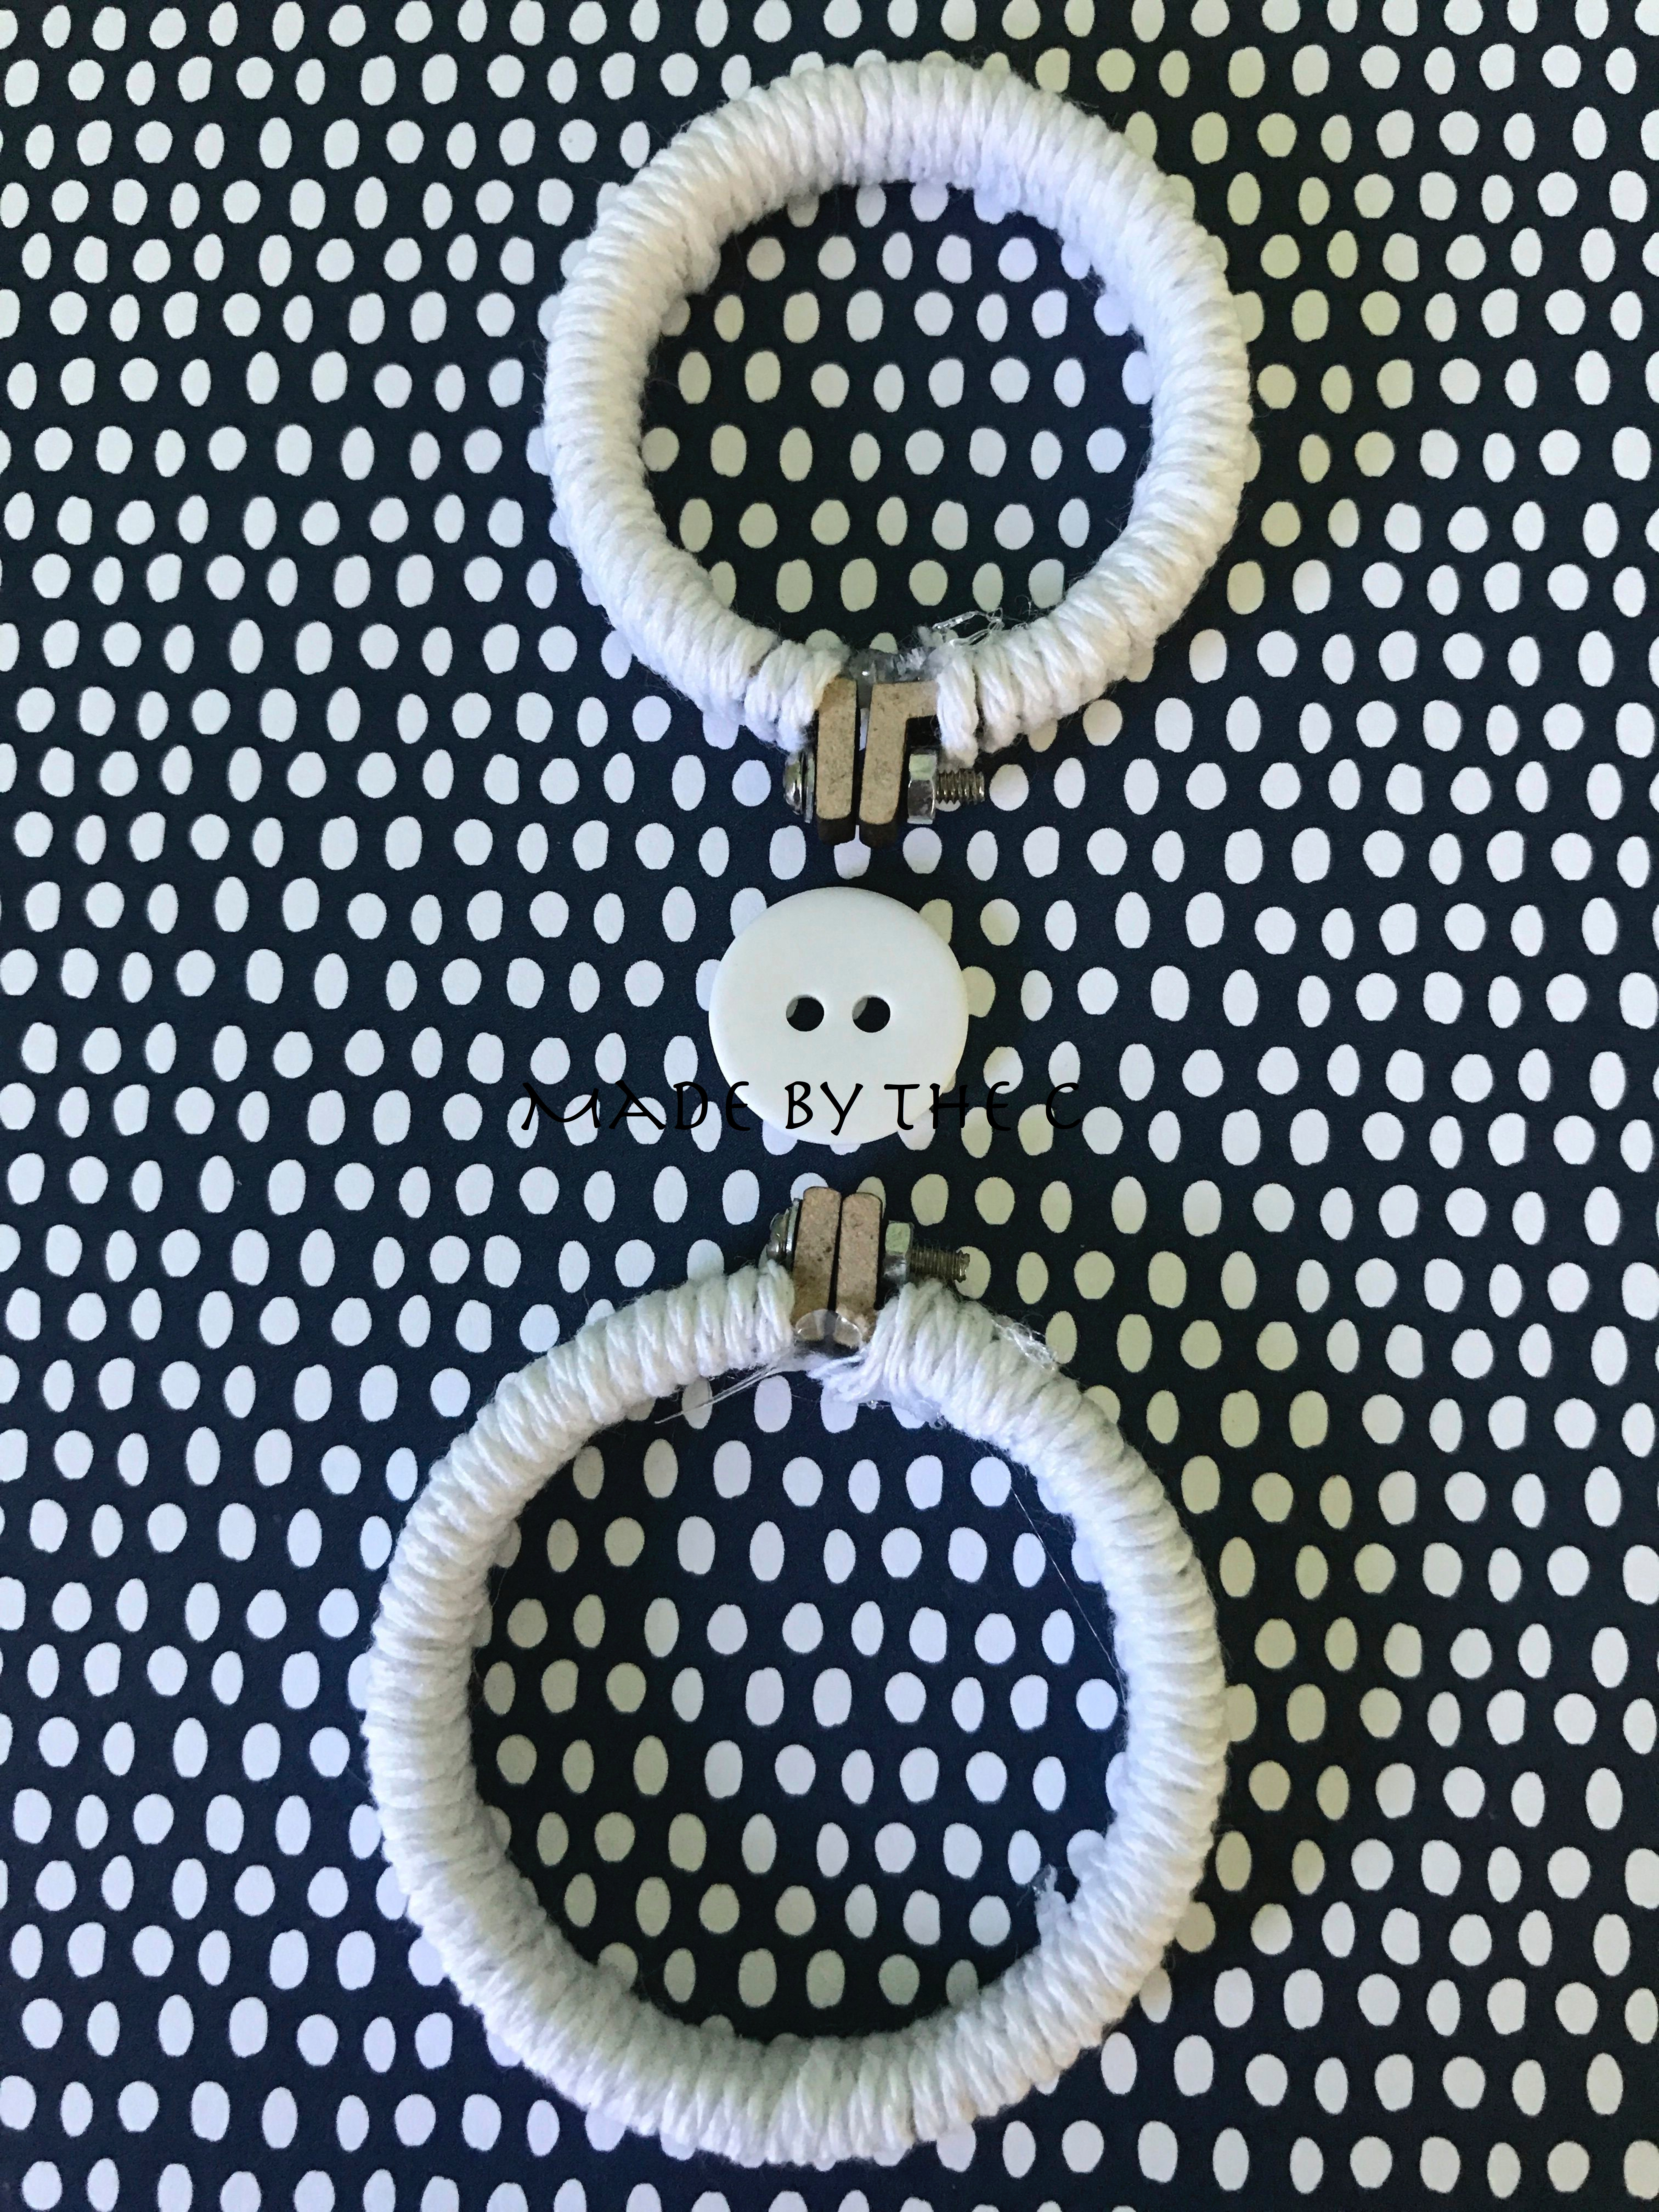 hoops and button_1